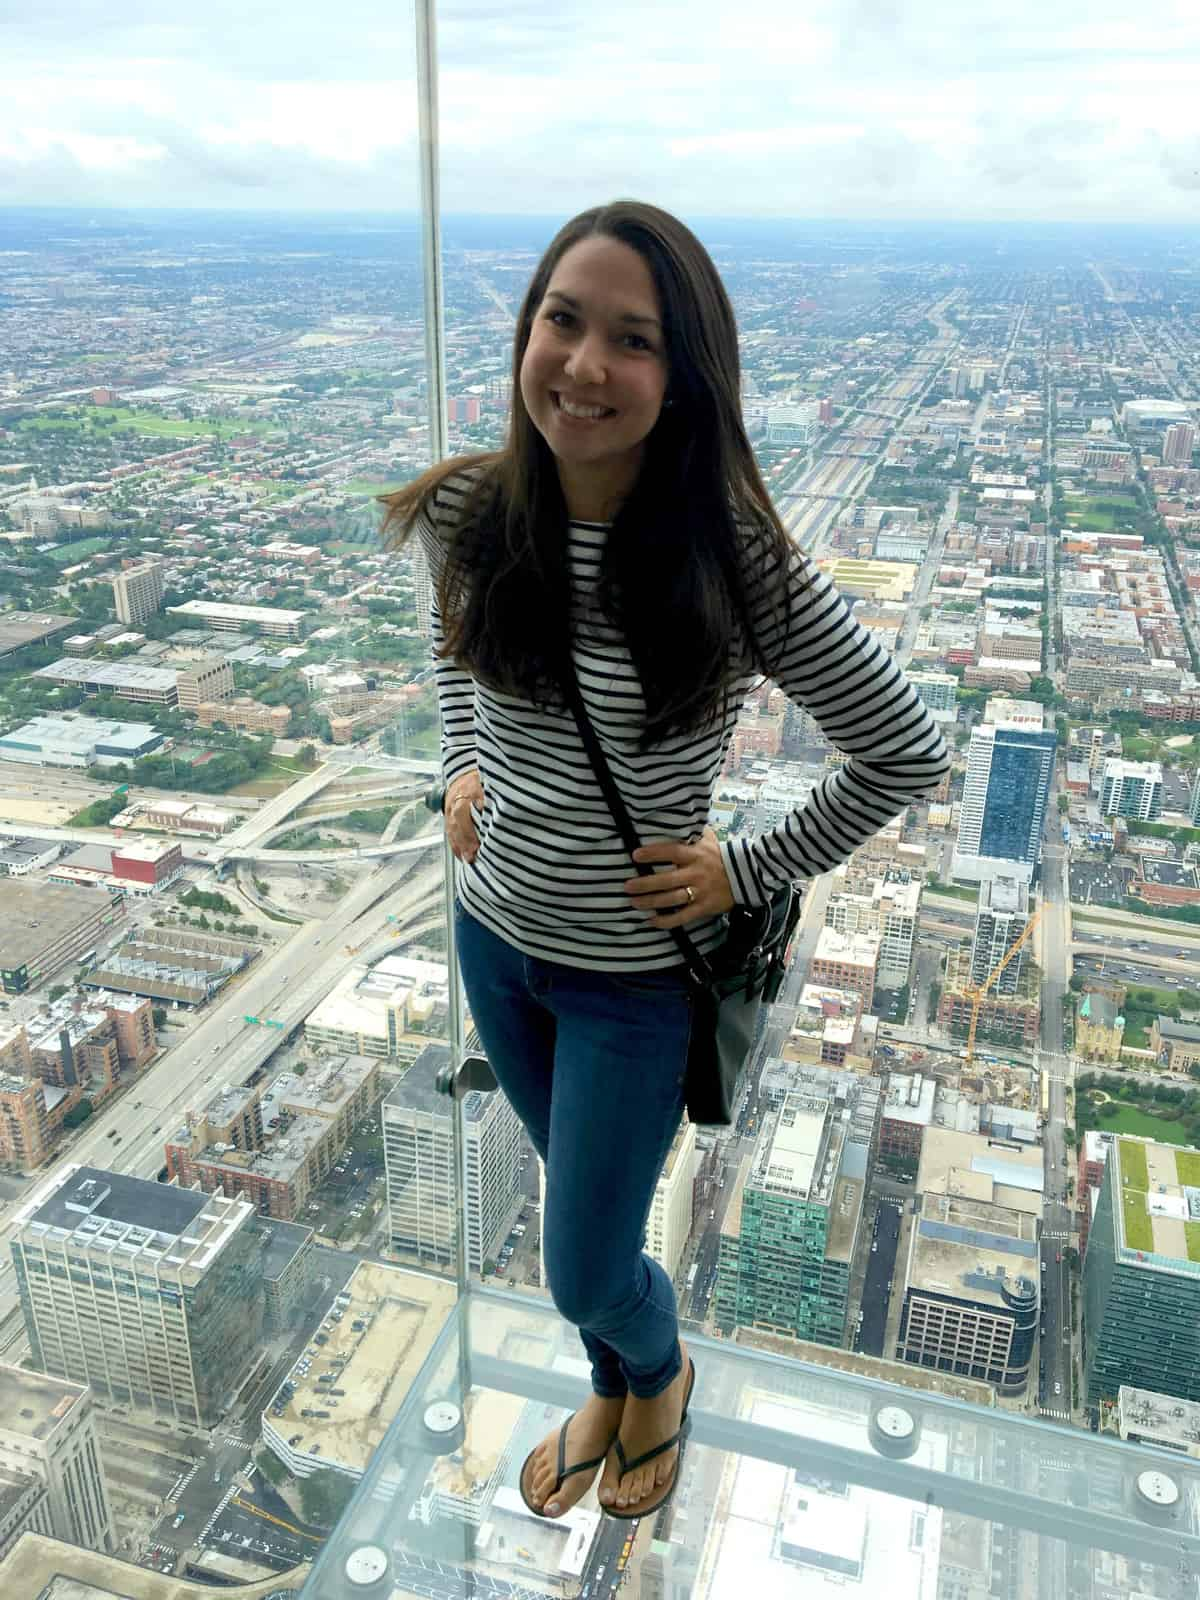 Dianna at the Sears Tower observation deck, overlooking Chicago